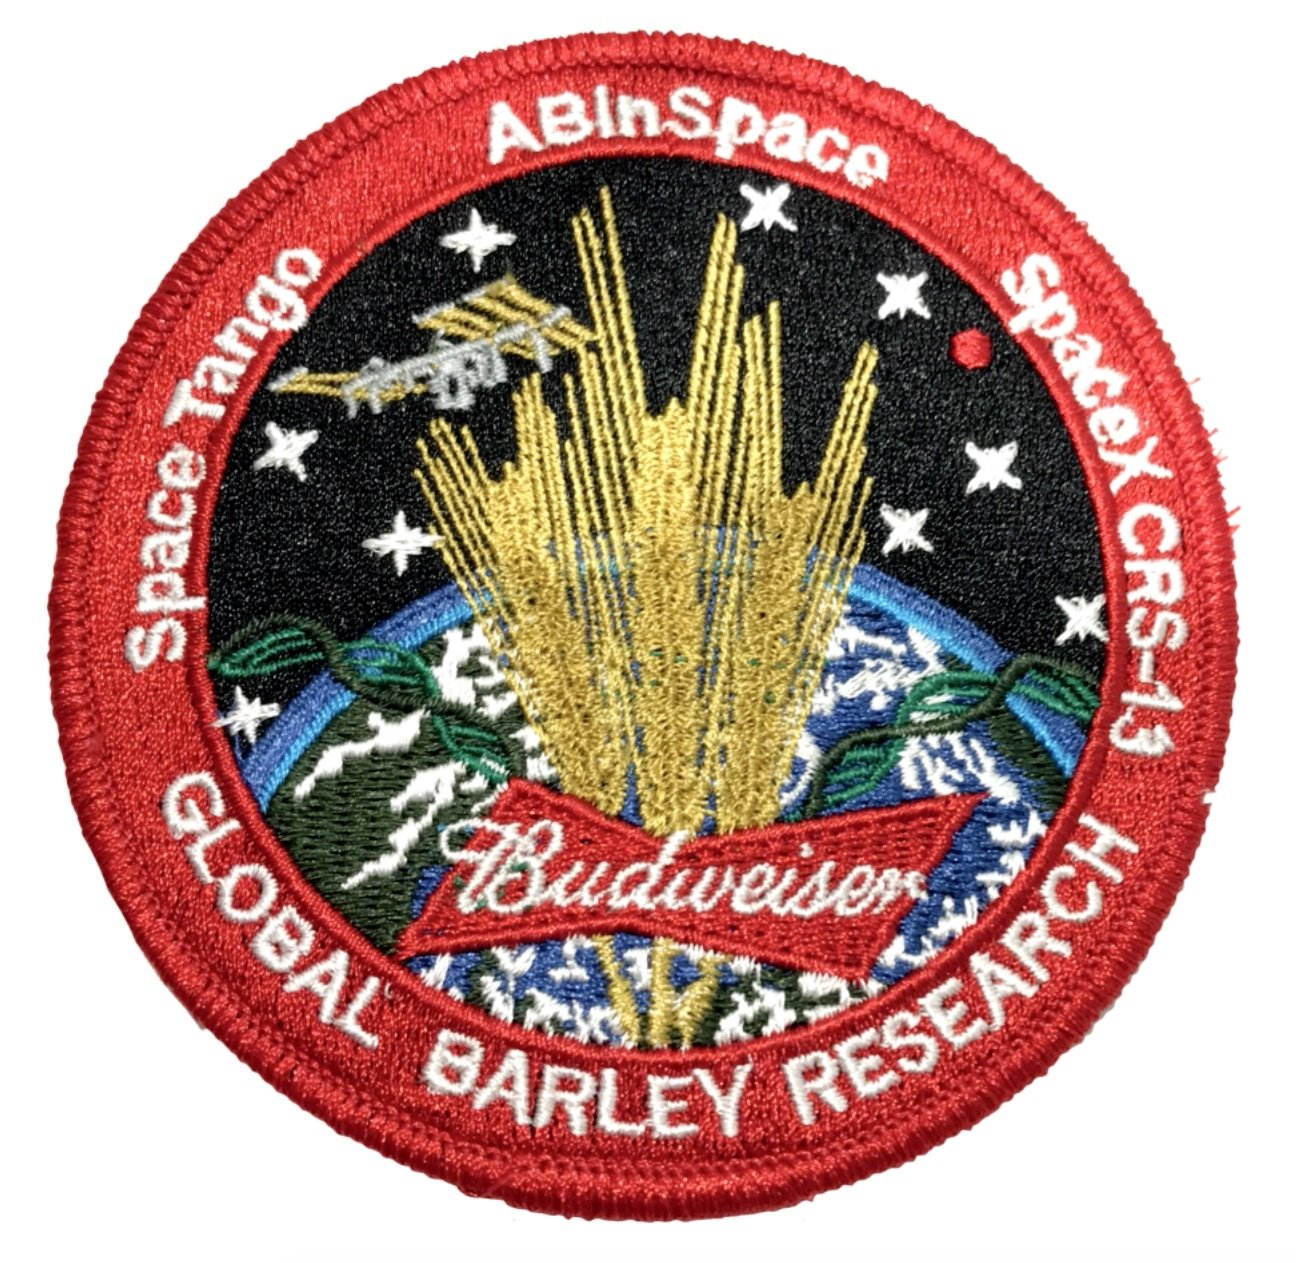 Budweiser to send barley into space